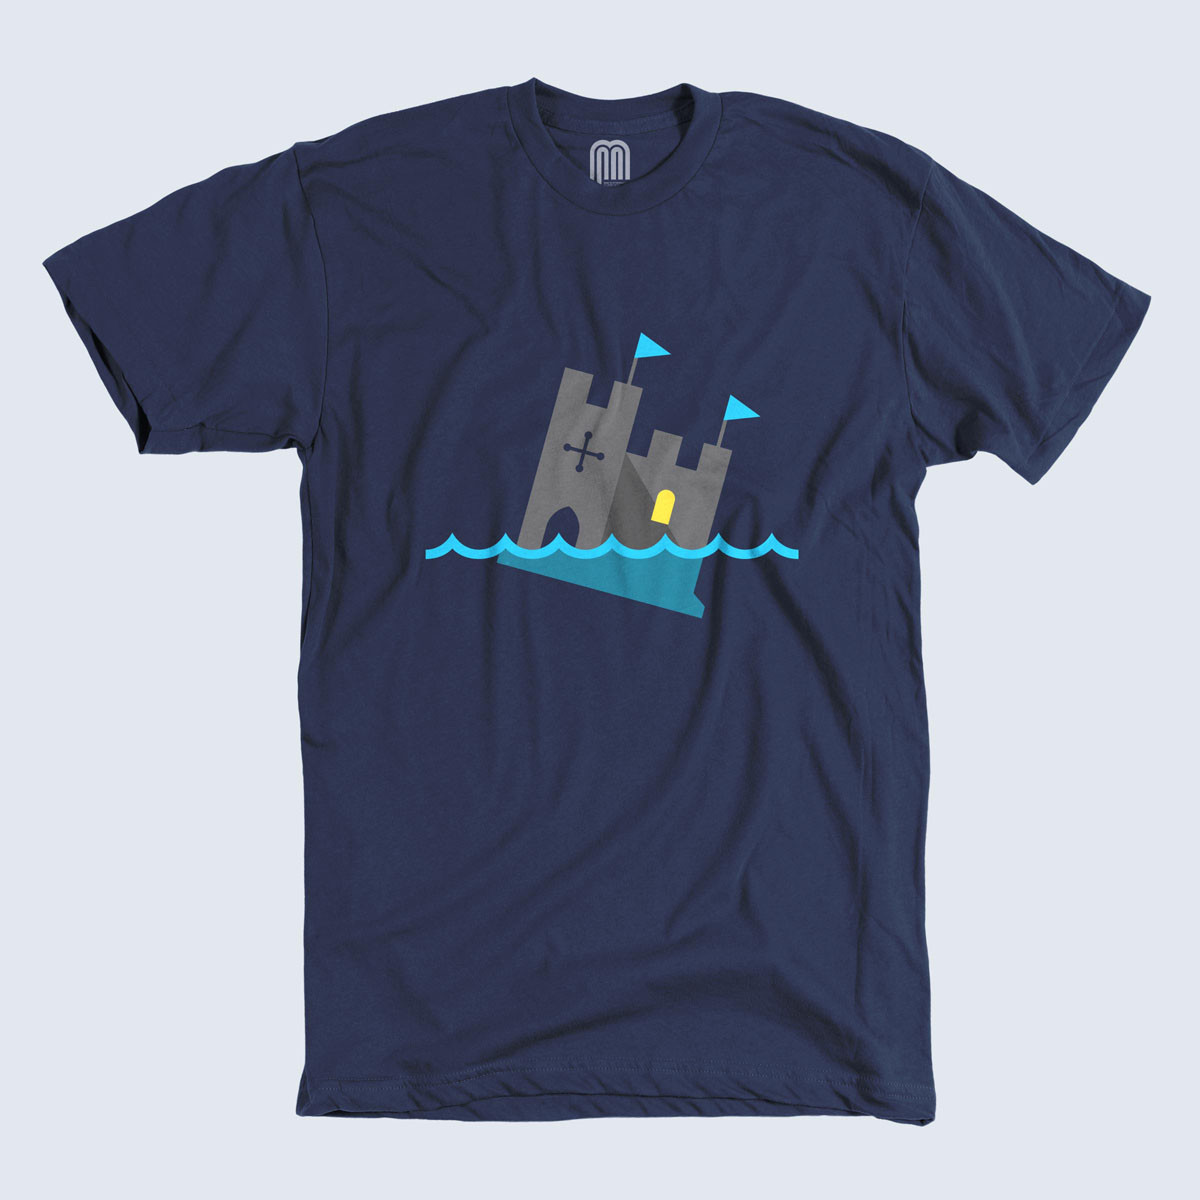 Please to enjoy: A shirt I made for United Pixelworkers.